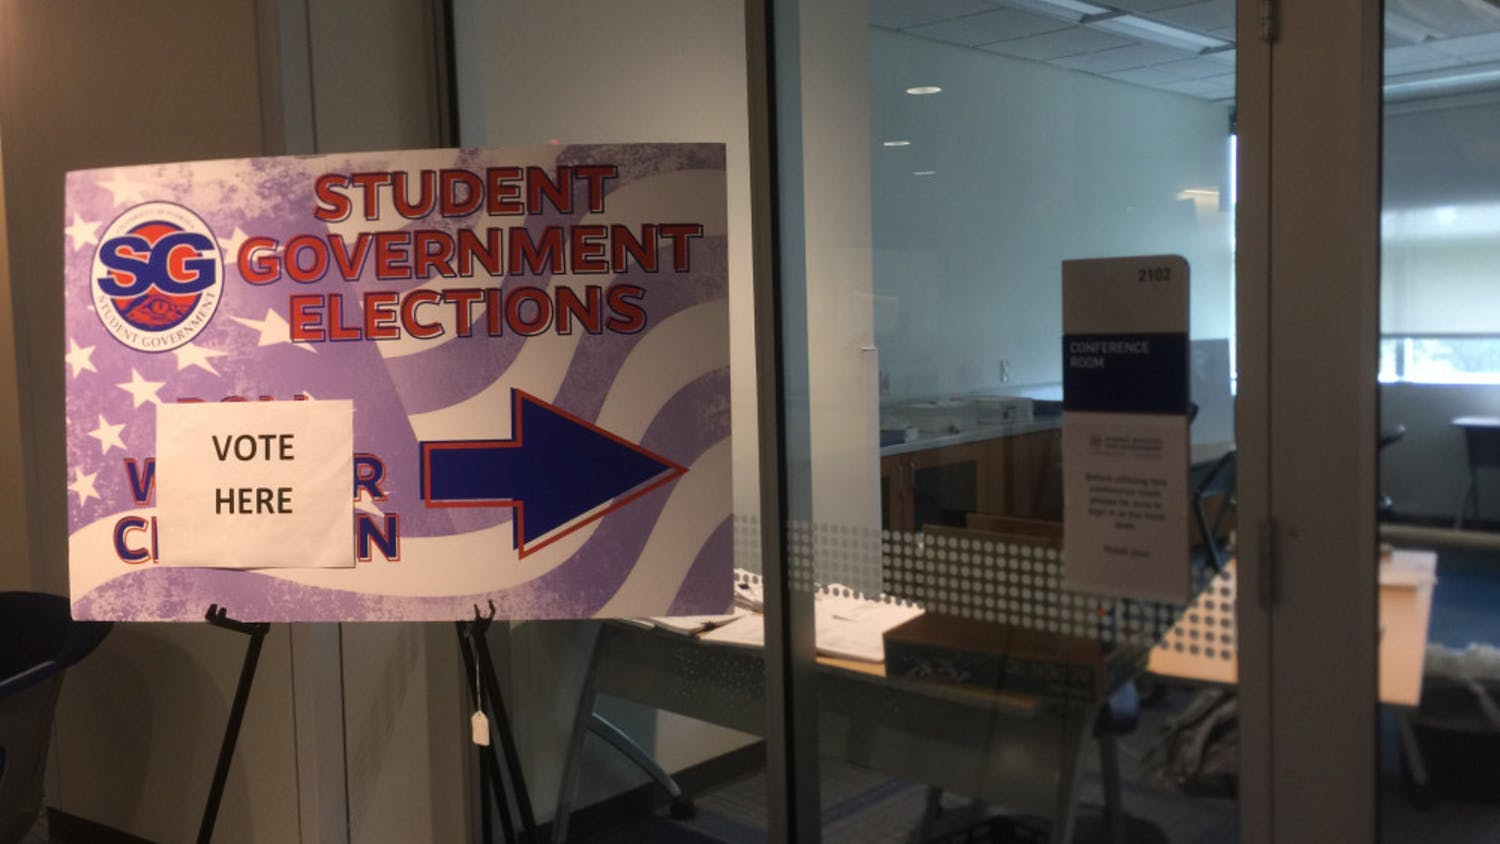 Early voting for Student Government elections began Monday, Sept. 28 in the Reitz Union.